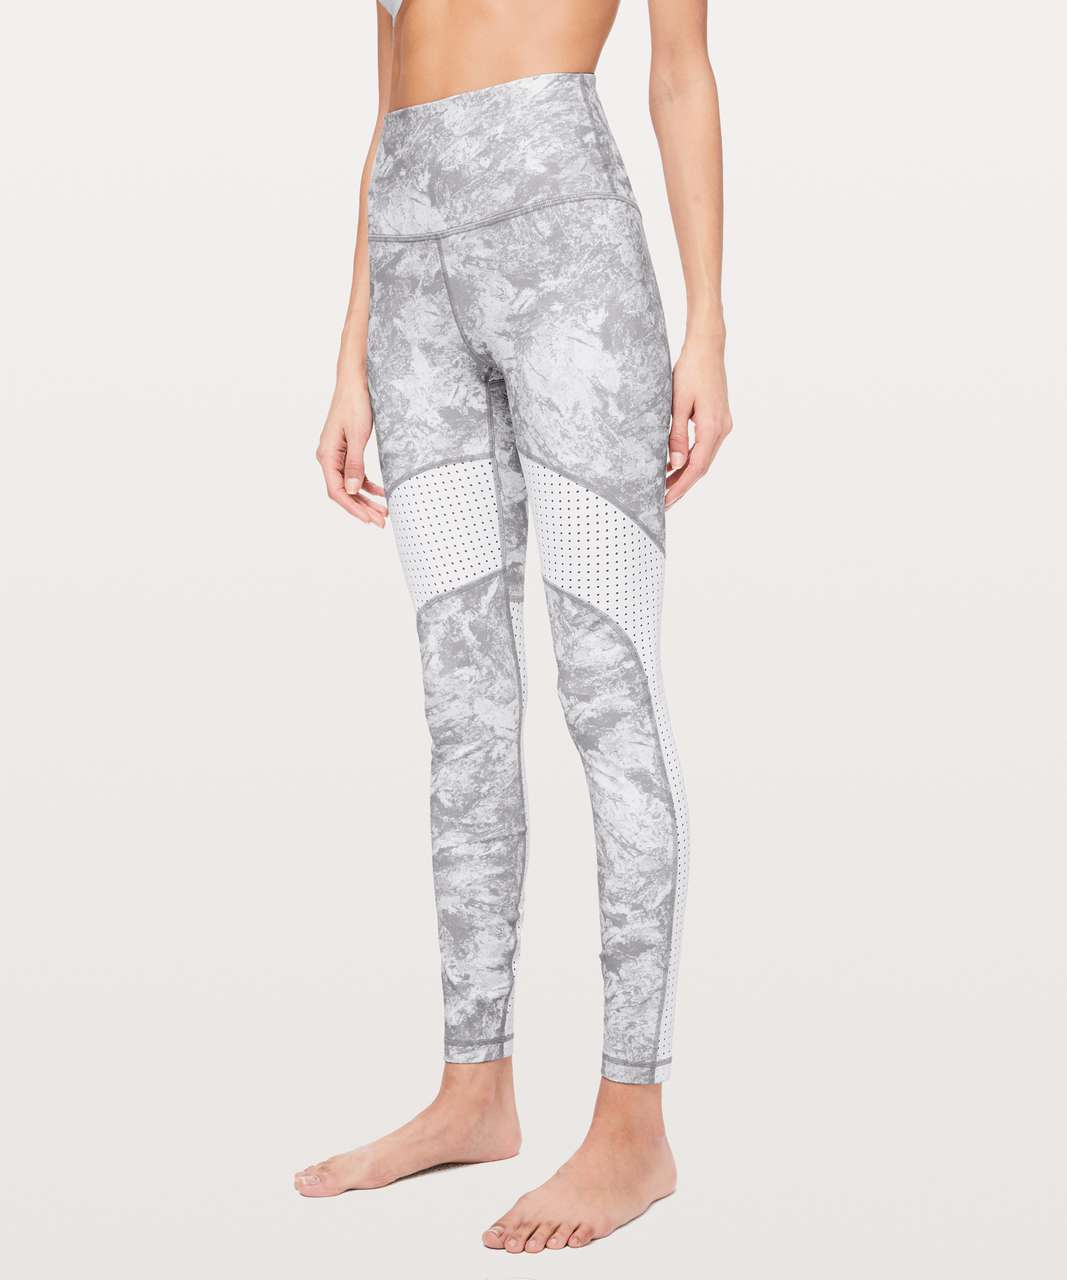 Lululemon Beach Break Paddle Tight - Washed Marble Alpine White Silverscreen / White